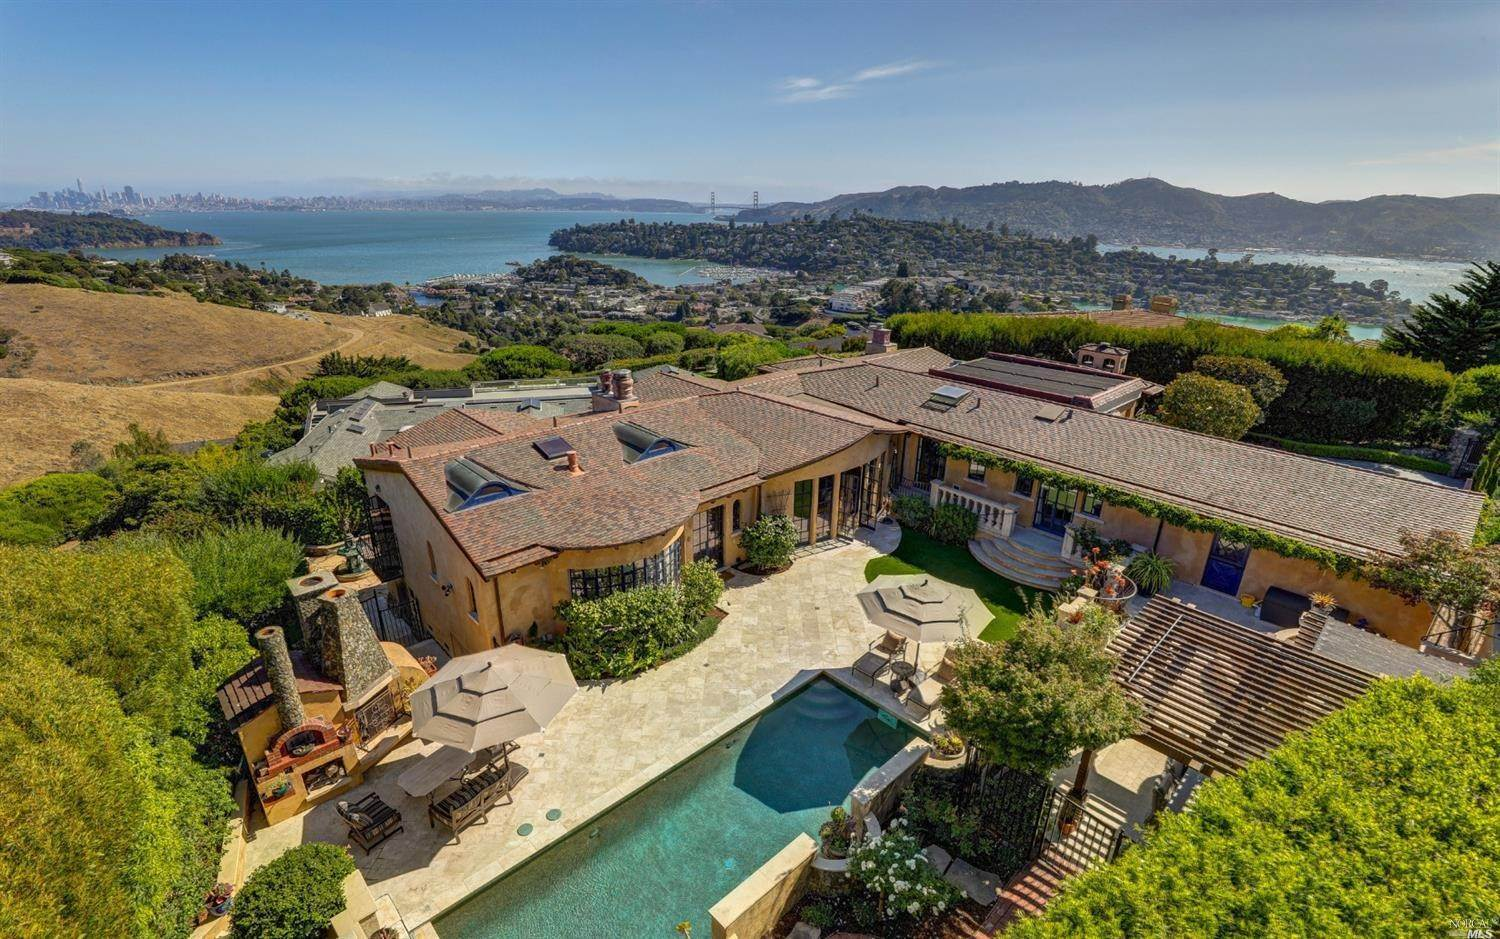 Single Family Homes for Sale at 8 Audrey Court, Tiburon Tiburon, California 94920 United States